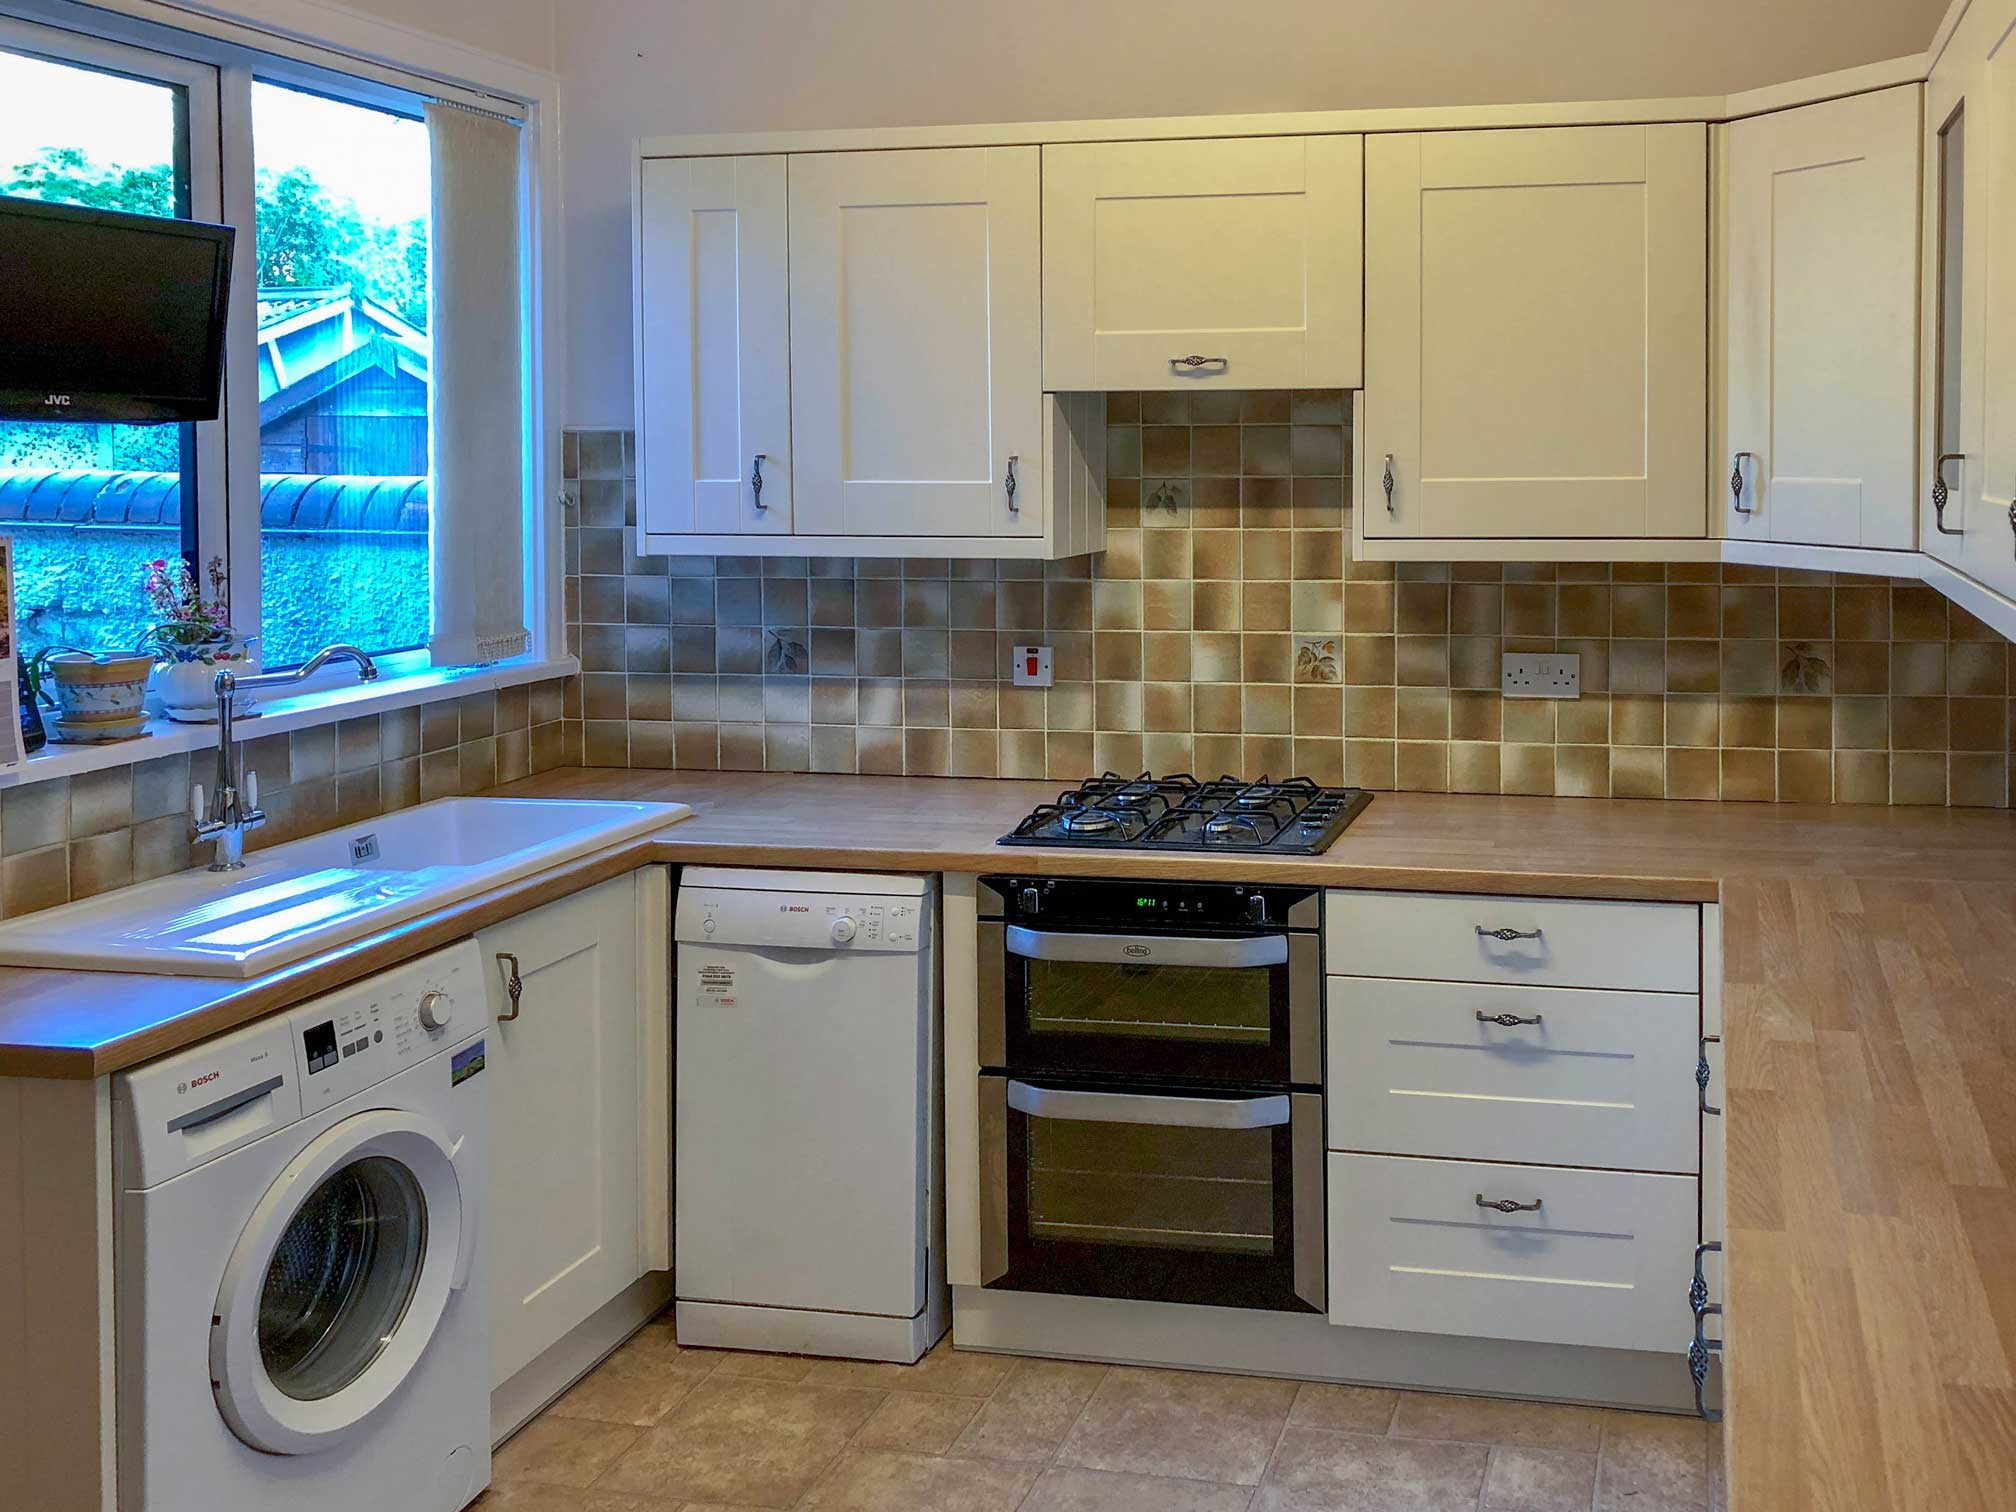 Our kitchens are designed and manufactured right here in Yorkshire which means you pay less!